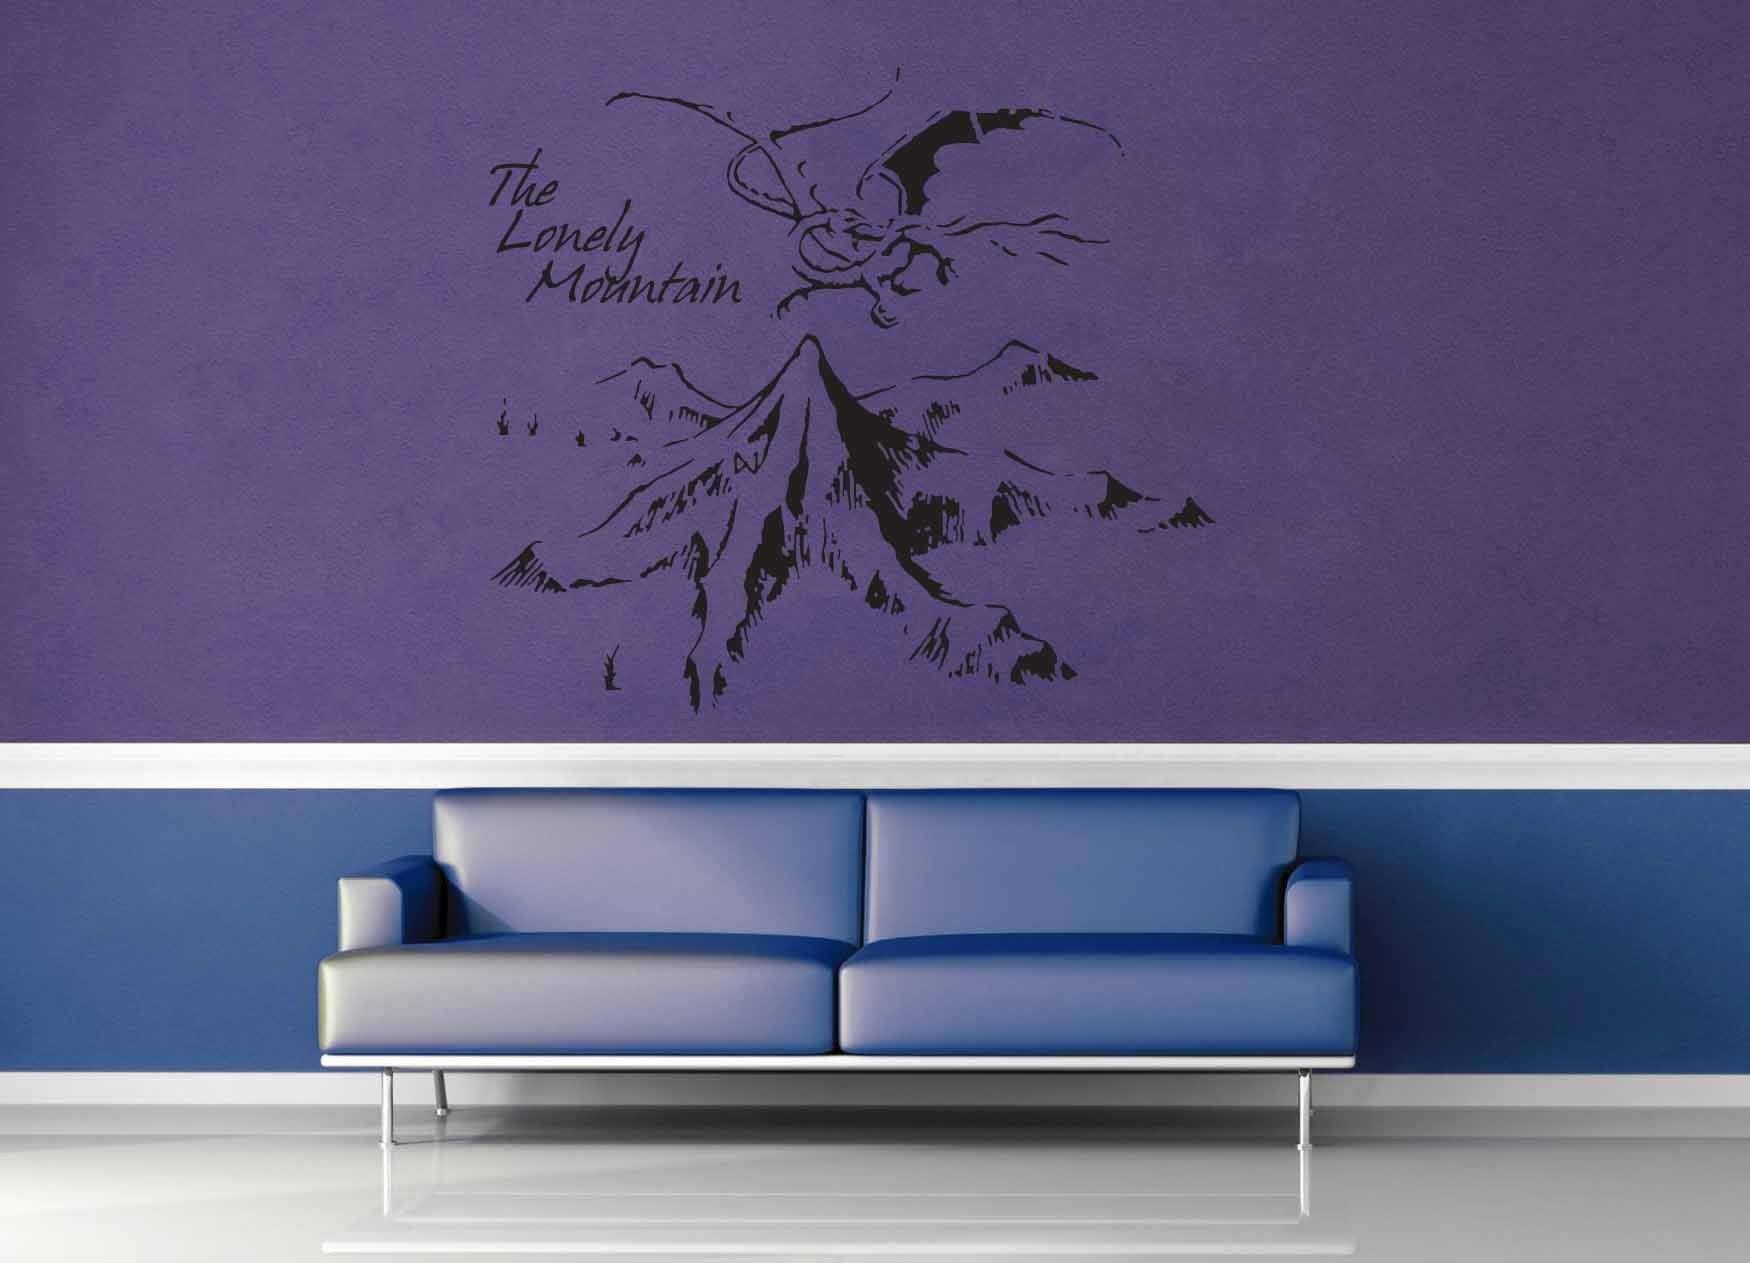 The Lonely Mountain - Tolkien - Wall Decal